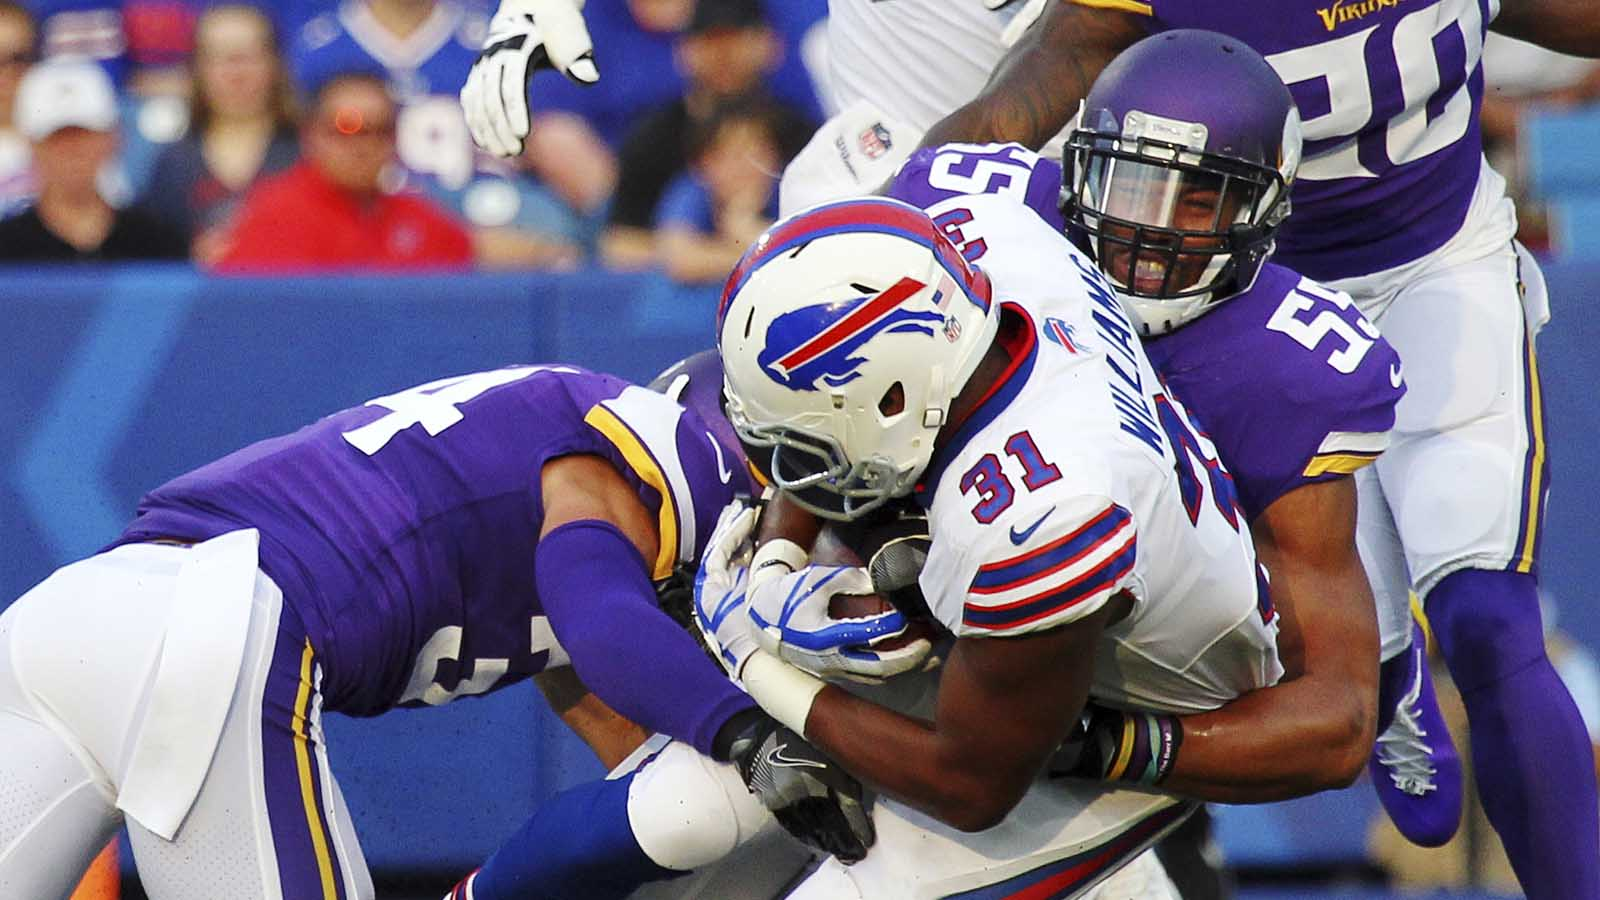 Minnesota Vikings outside linebacker Anthony Barr (55) and Bishop Sankey (left) tackle the Buffalo Bills' Jonathan Williams during the first half of a preseason game Thursday, Aug. 10, 2017, in Orchard Park, N.Y.